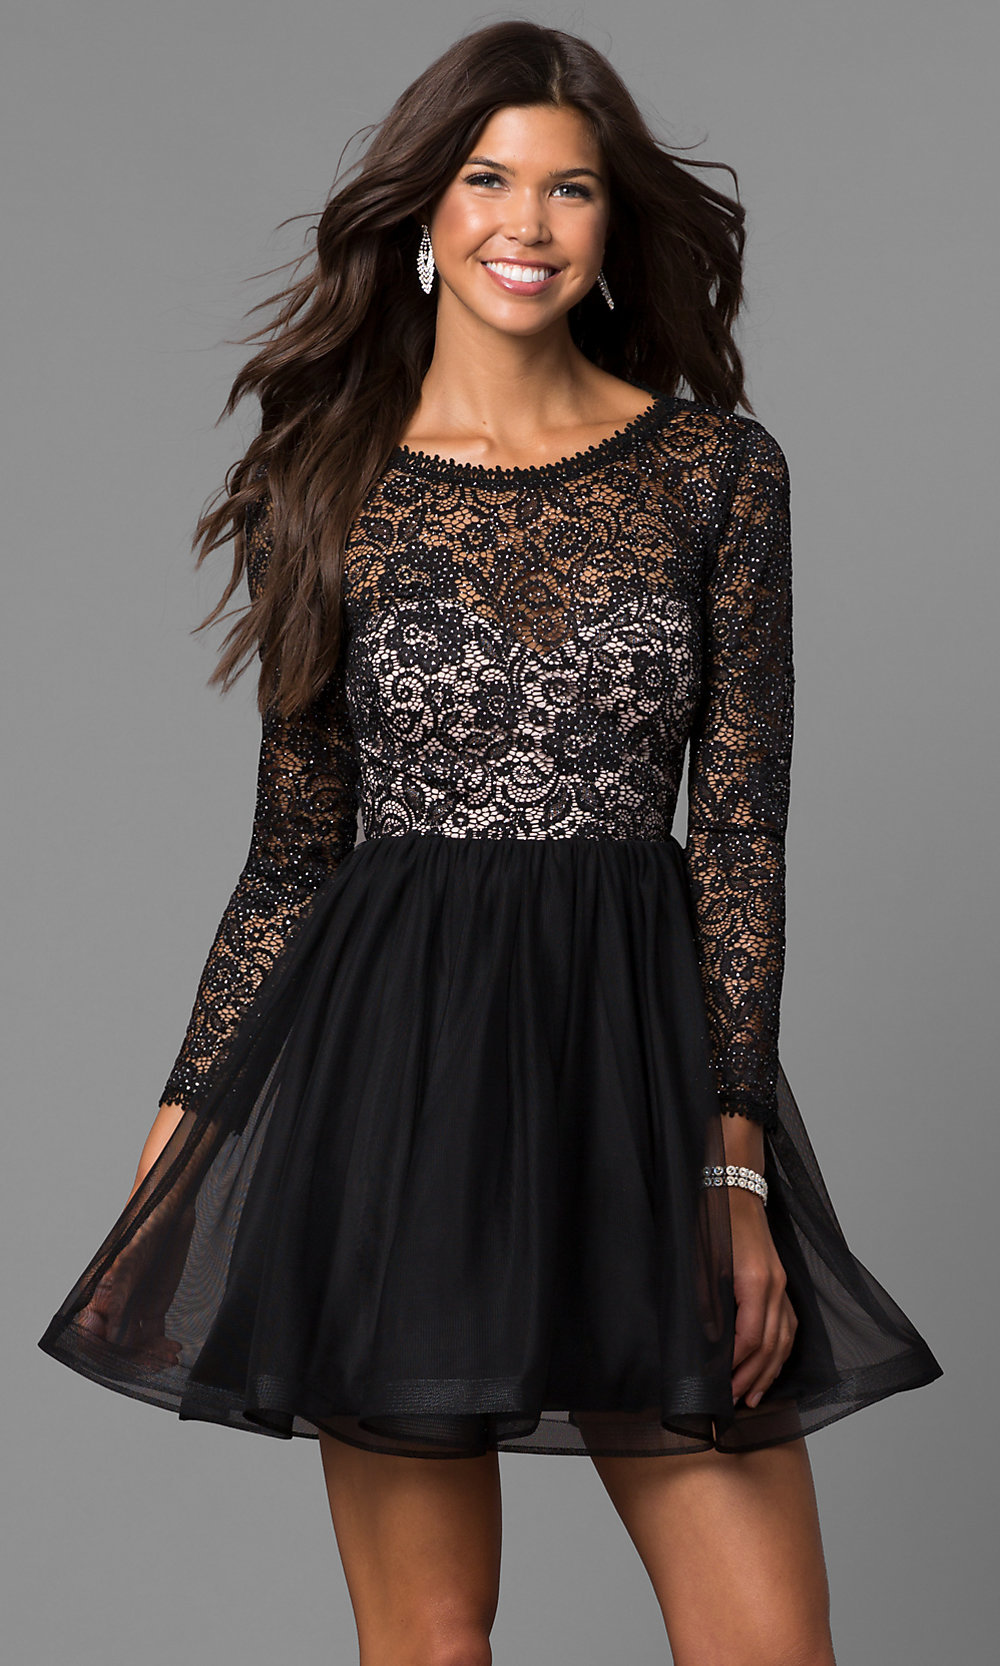 Black Lace Bodice Sleeved Homecoming Dress Promgirl